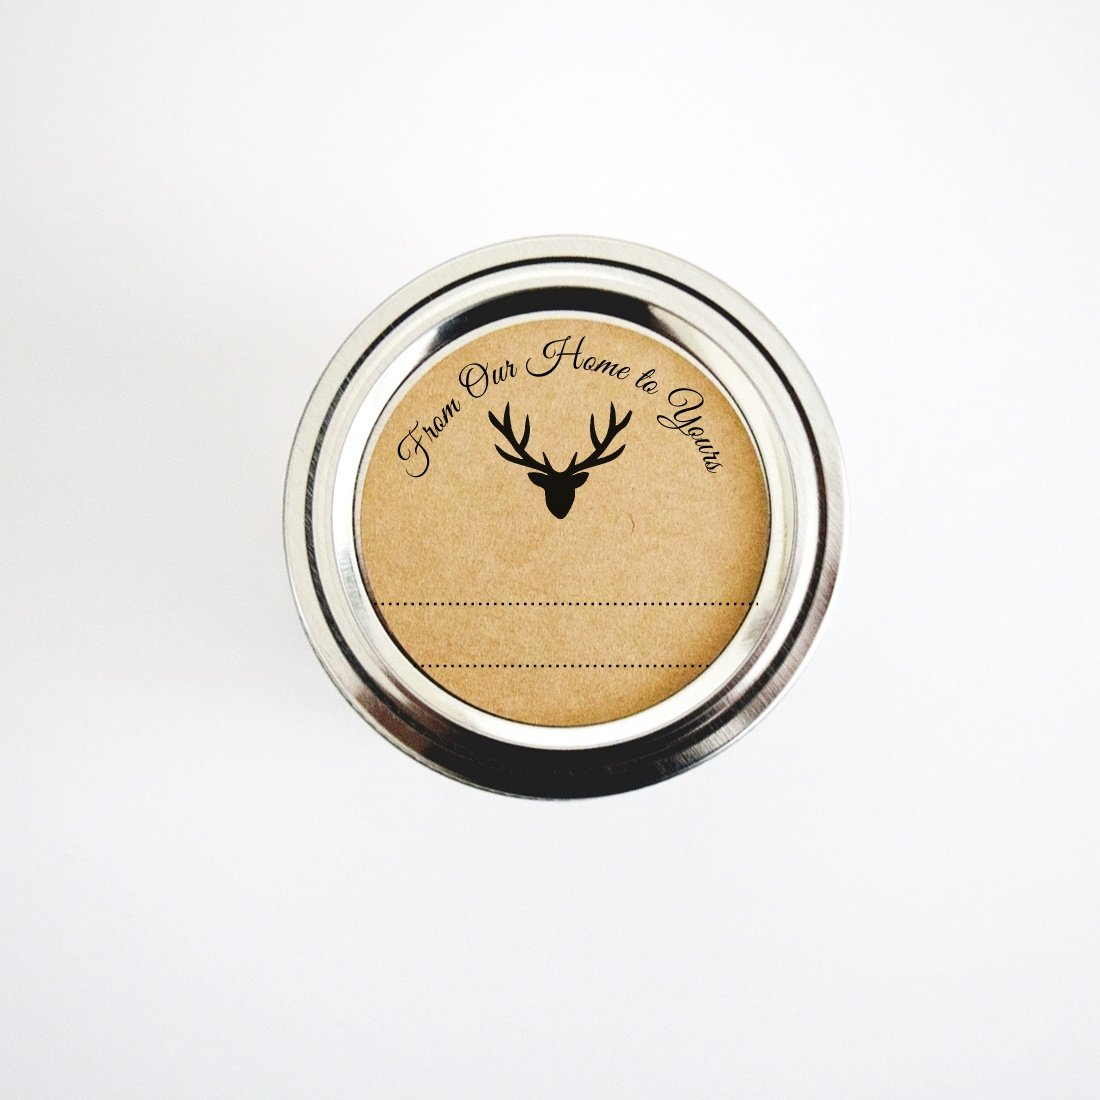 Rustic Woodland Deer Round Stickers by Once Upon Supplies, From Our Home to Yours Gift Labels, 2'' Size Fits Regular Mouth Mason Jars, 40 Stickers